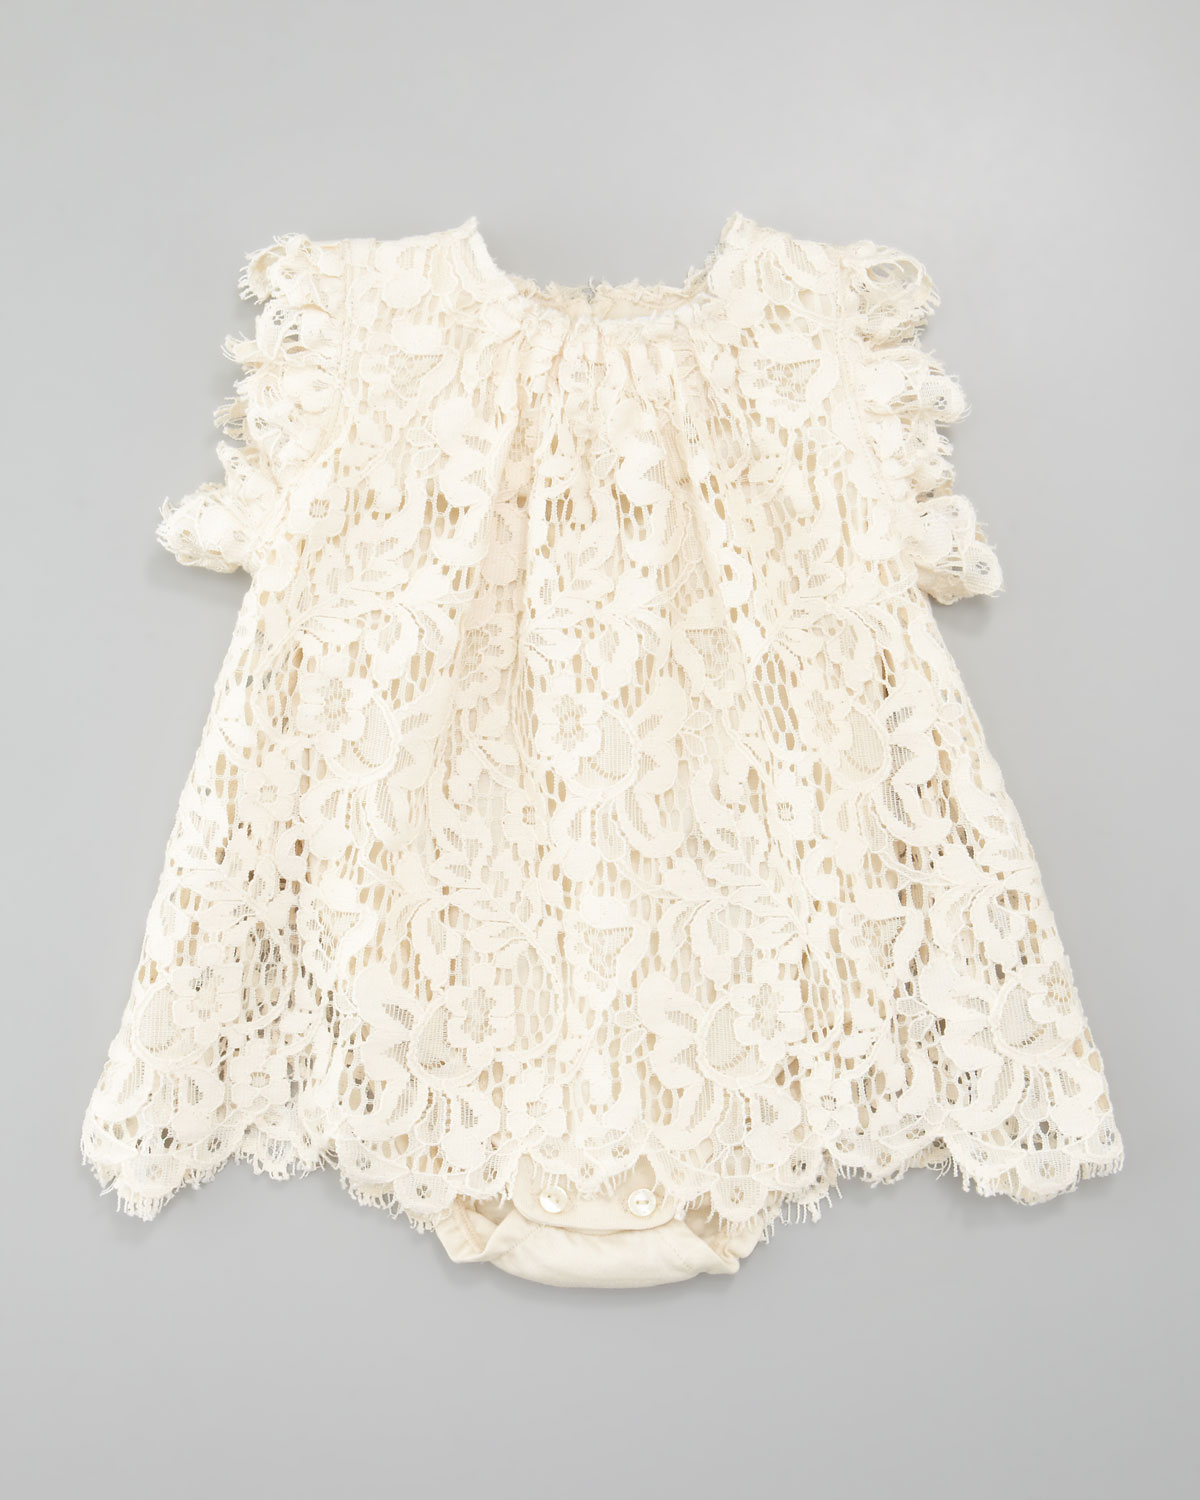 How Much Would You Spend Over the Top Baby Clothes